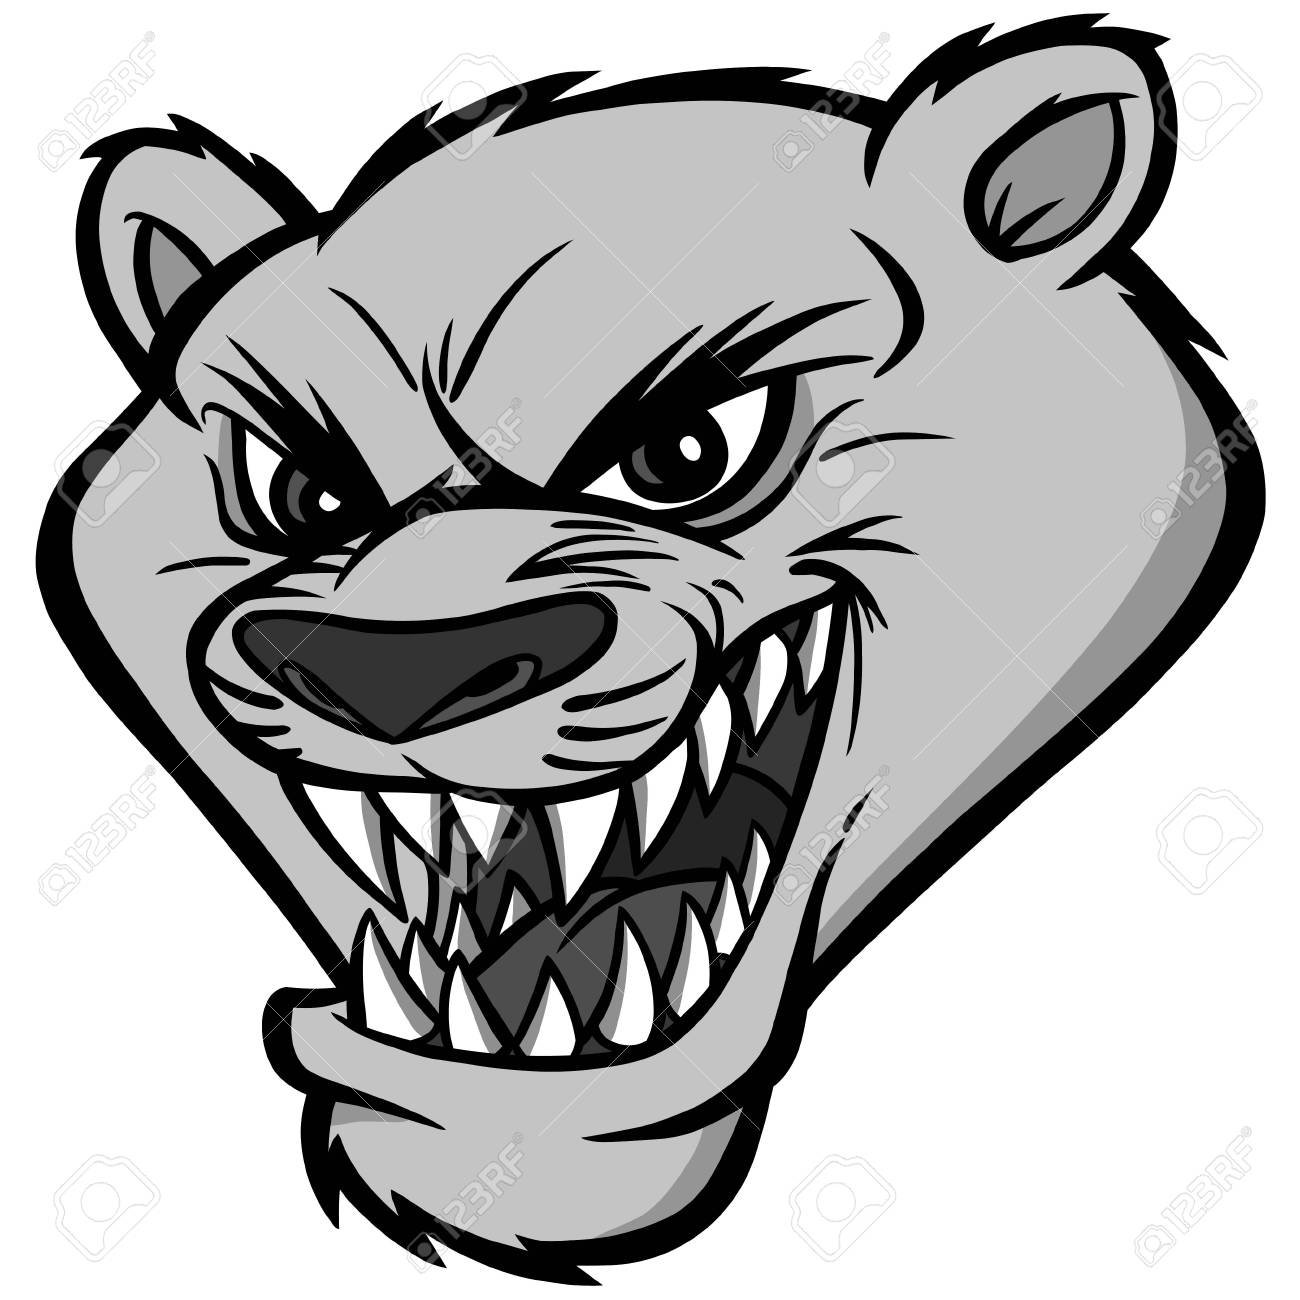 a vector illustration of a cartoon cougar mascot head royalty free rh 123rf com cartoon cougar paw cartoon cougar running